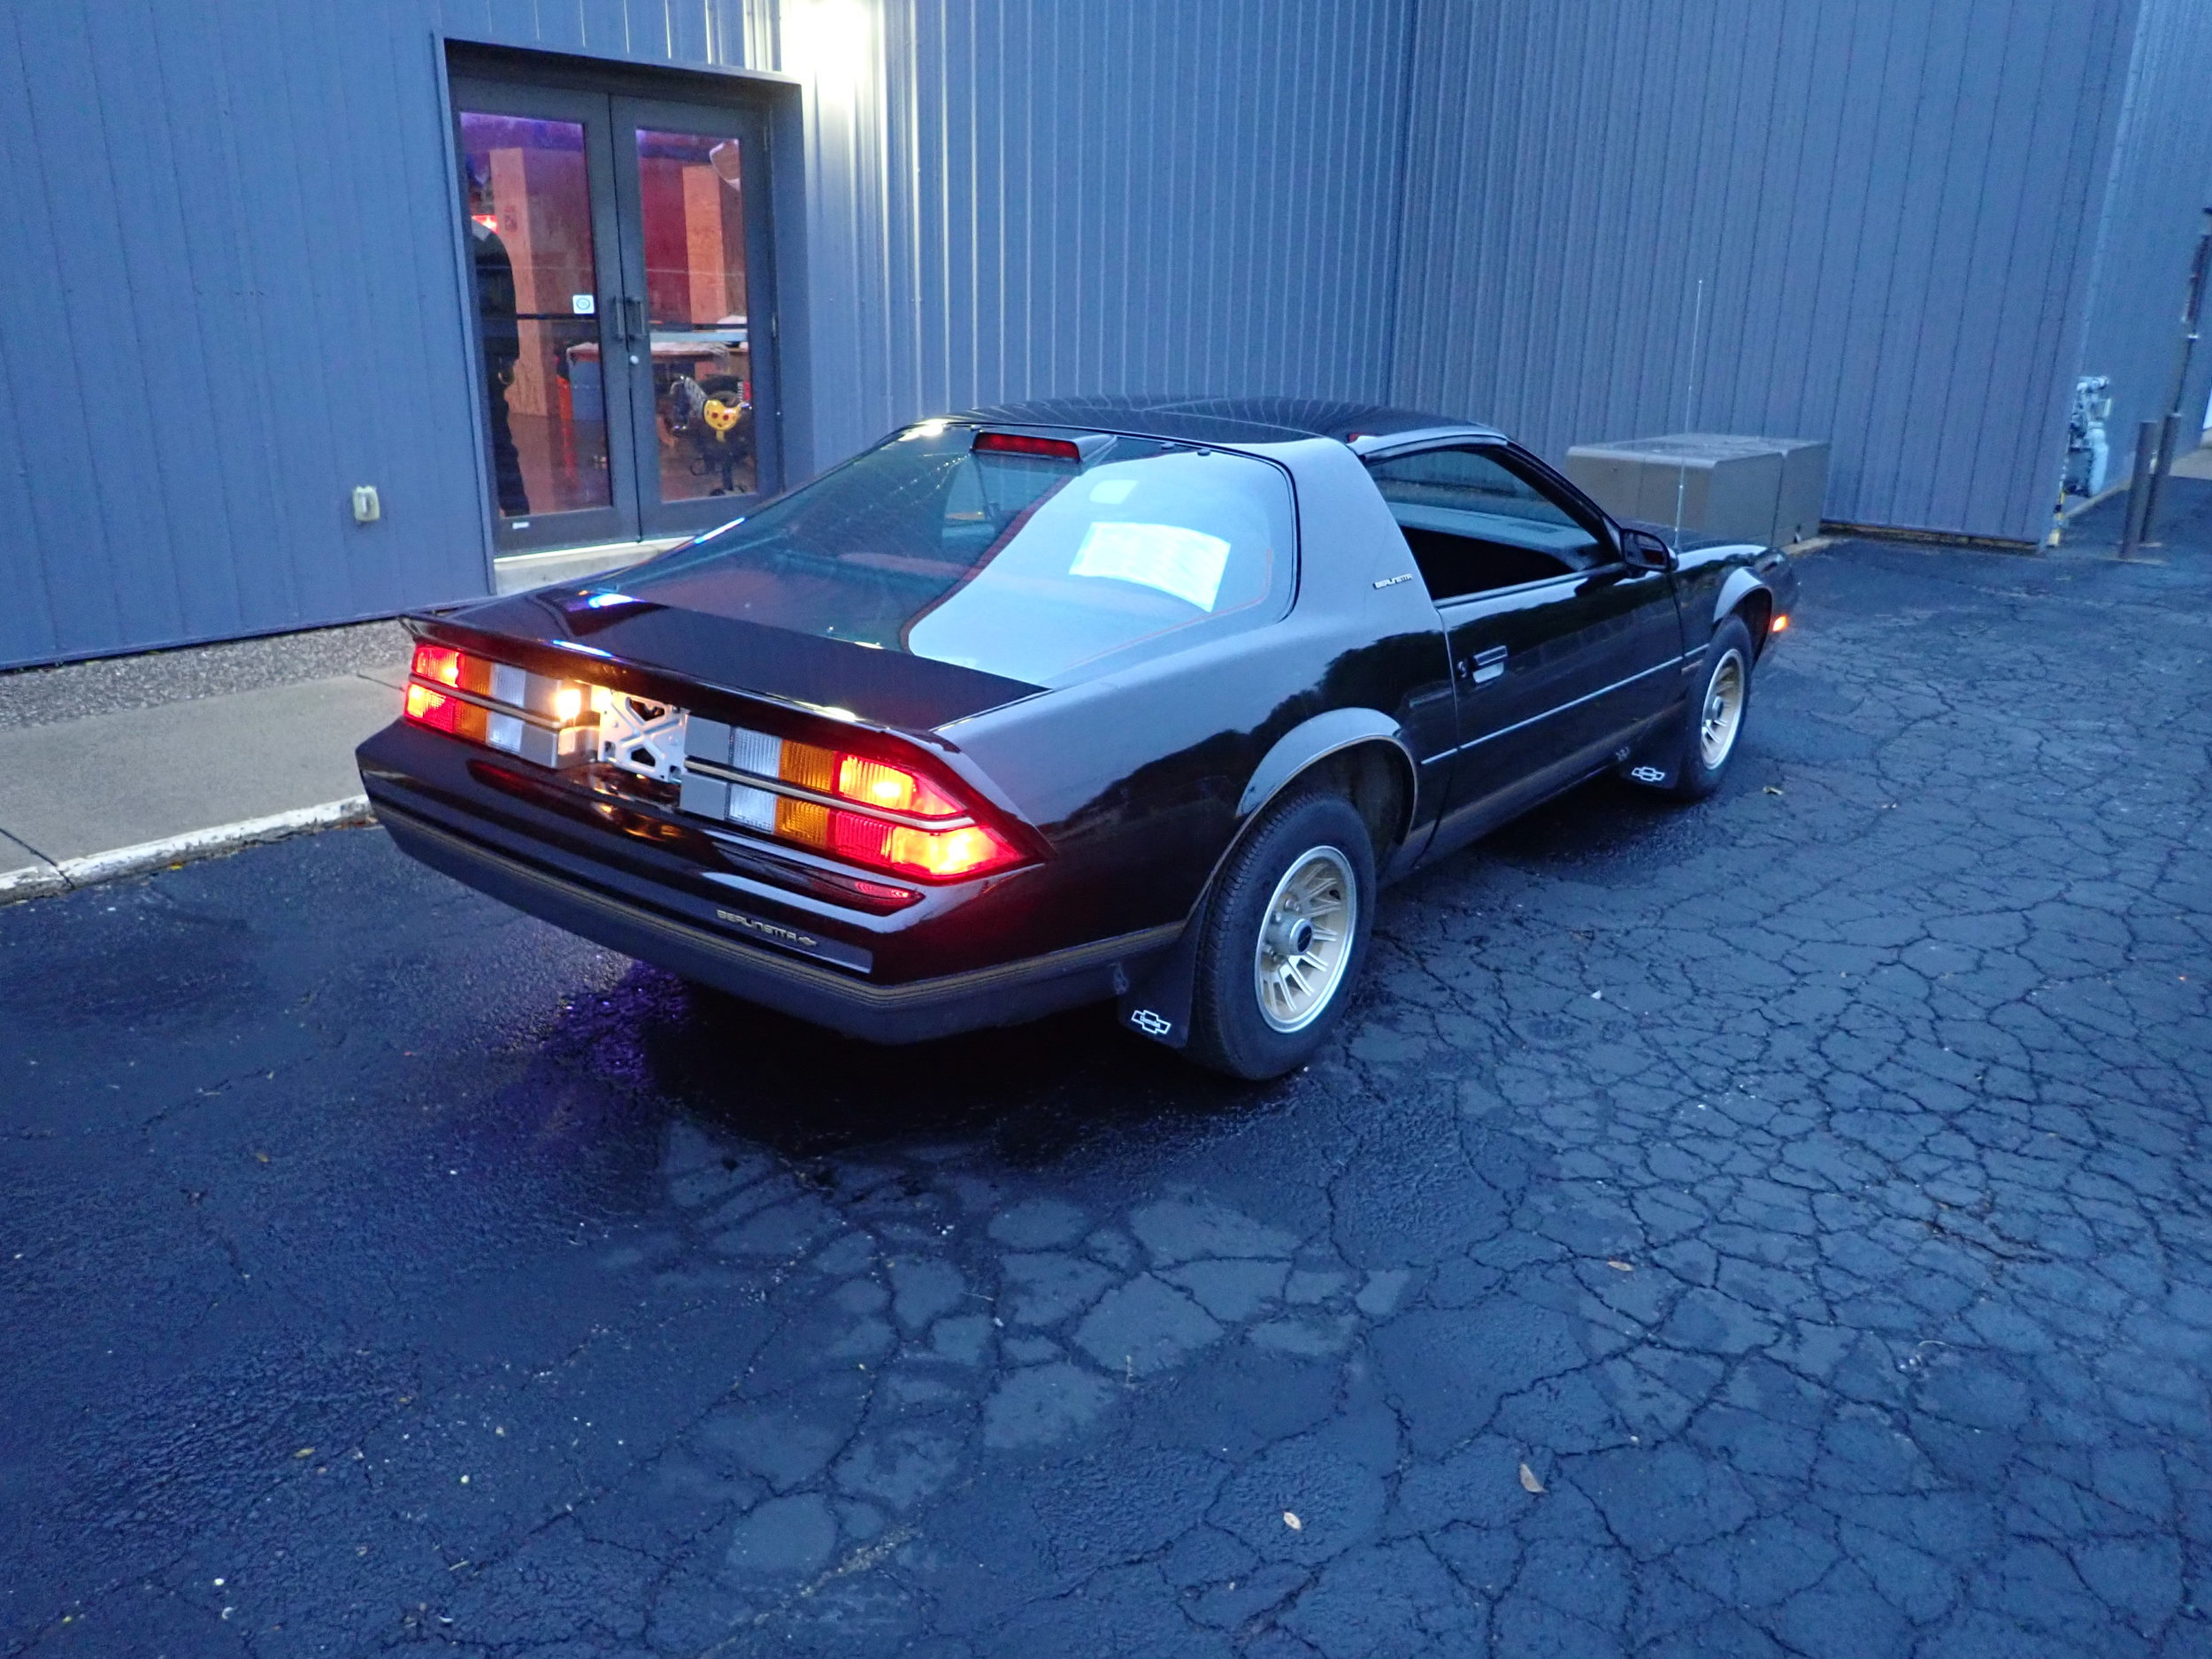 3 1986 Chevrolet Camaro Berlinetta Wherz F28.JPG